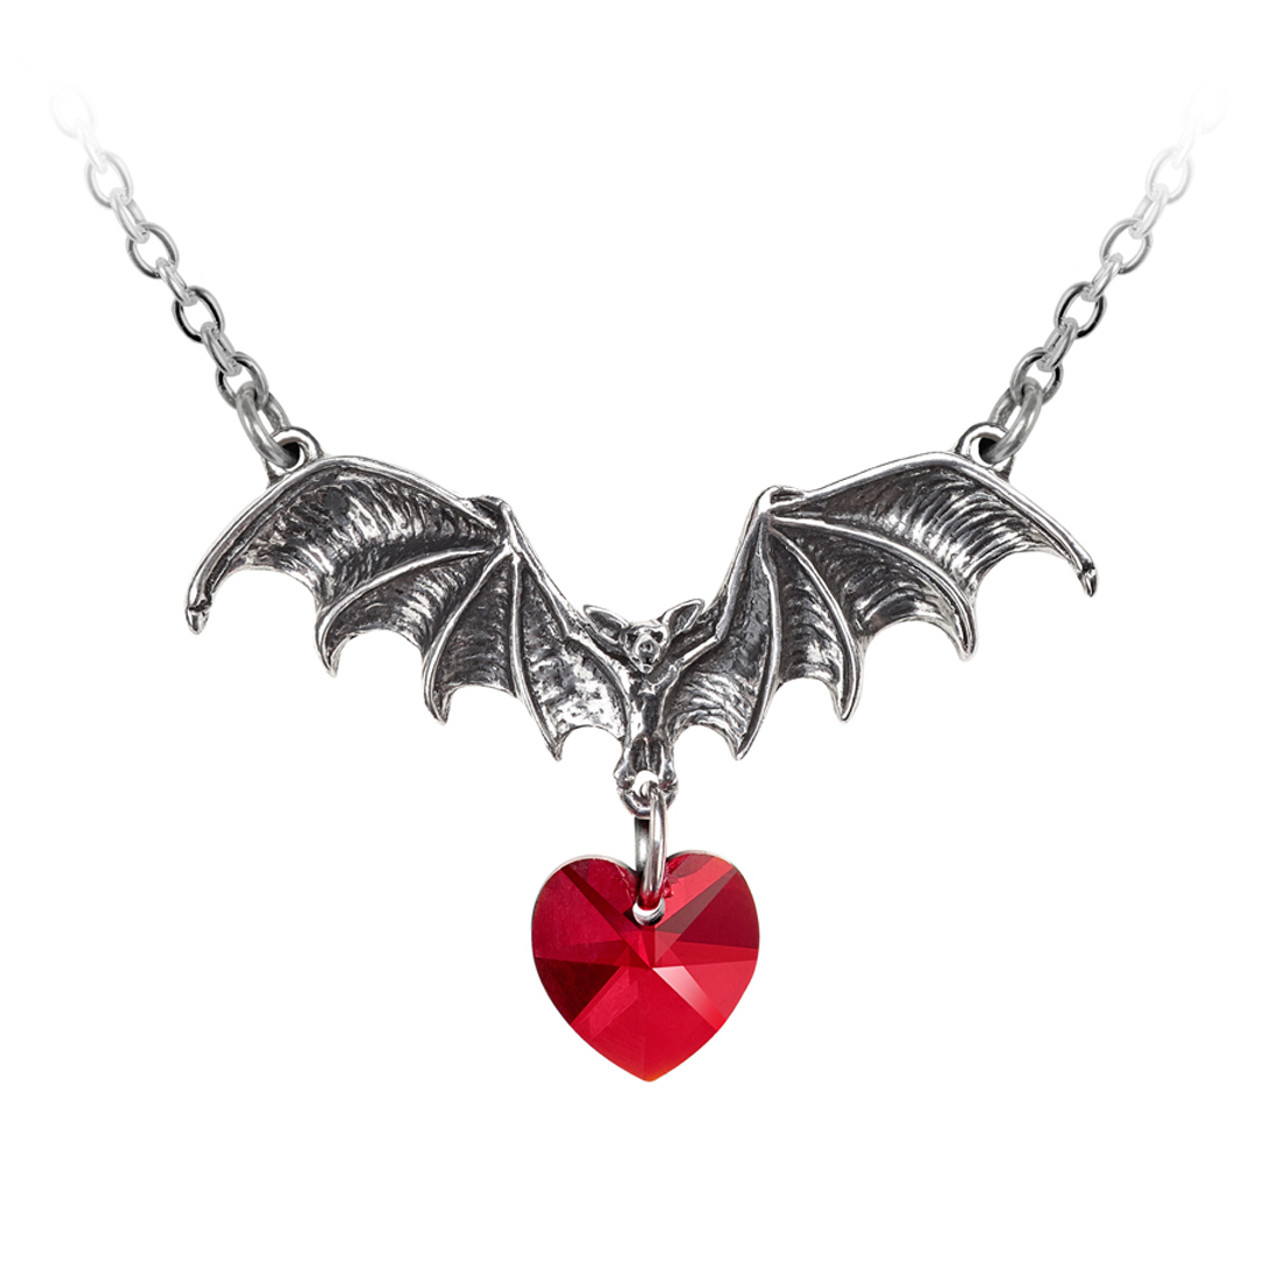 Alchemy Gothic Vampire Love Heart Pendant Necklace Pewter Jewelry